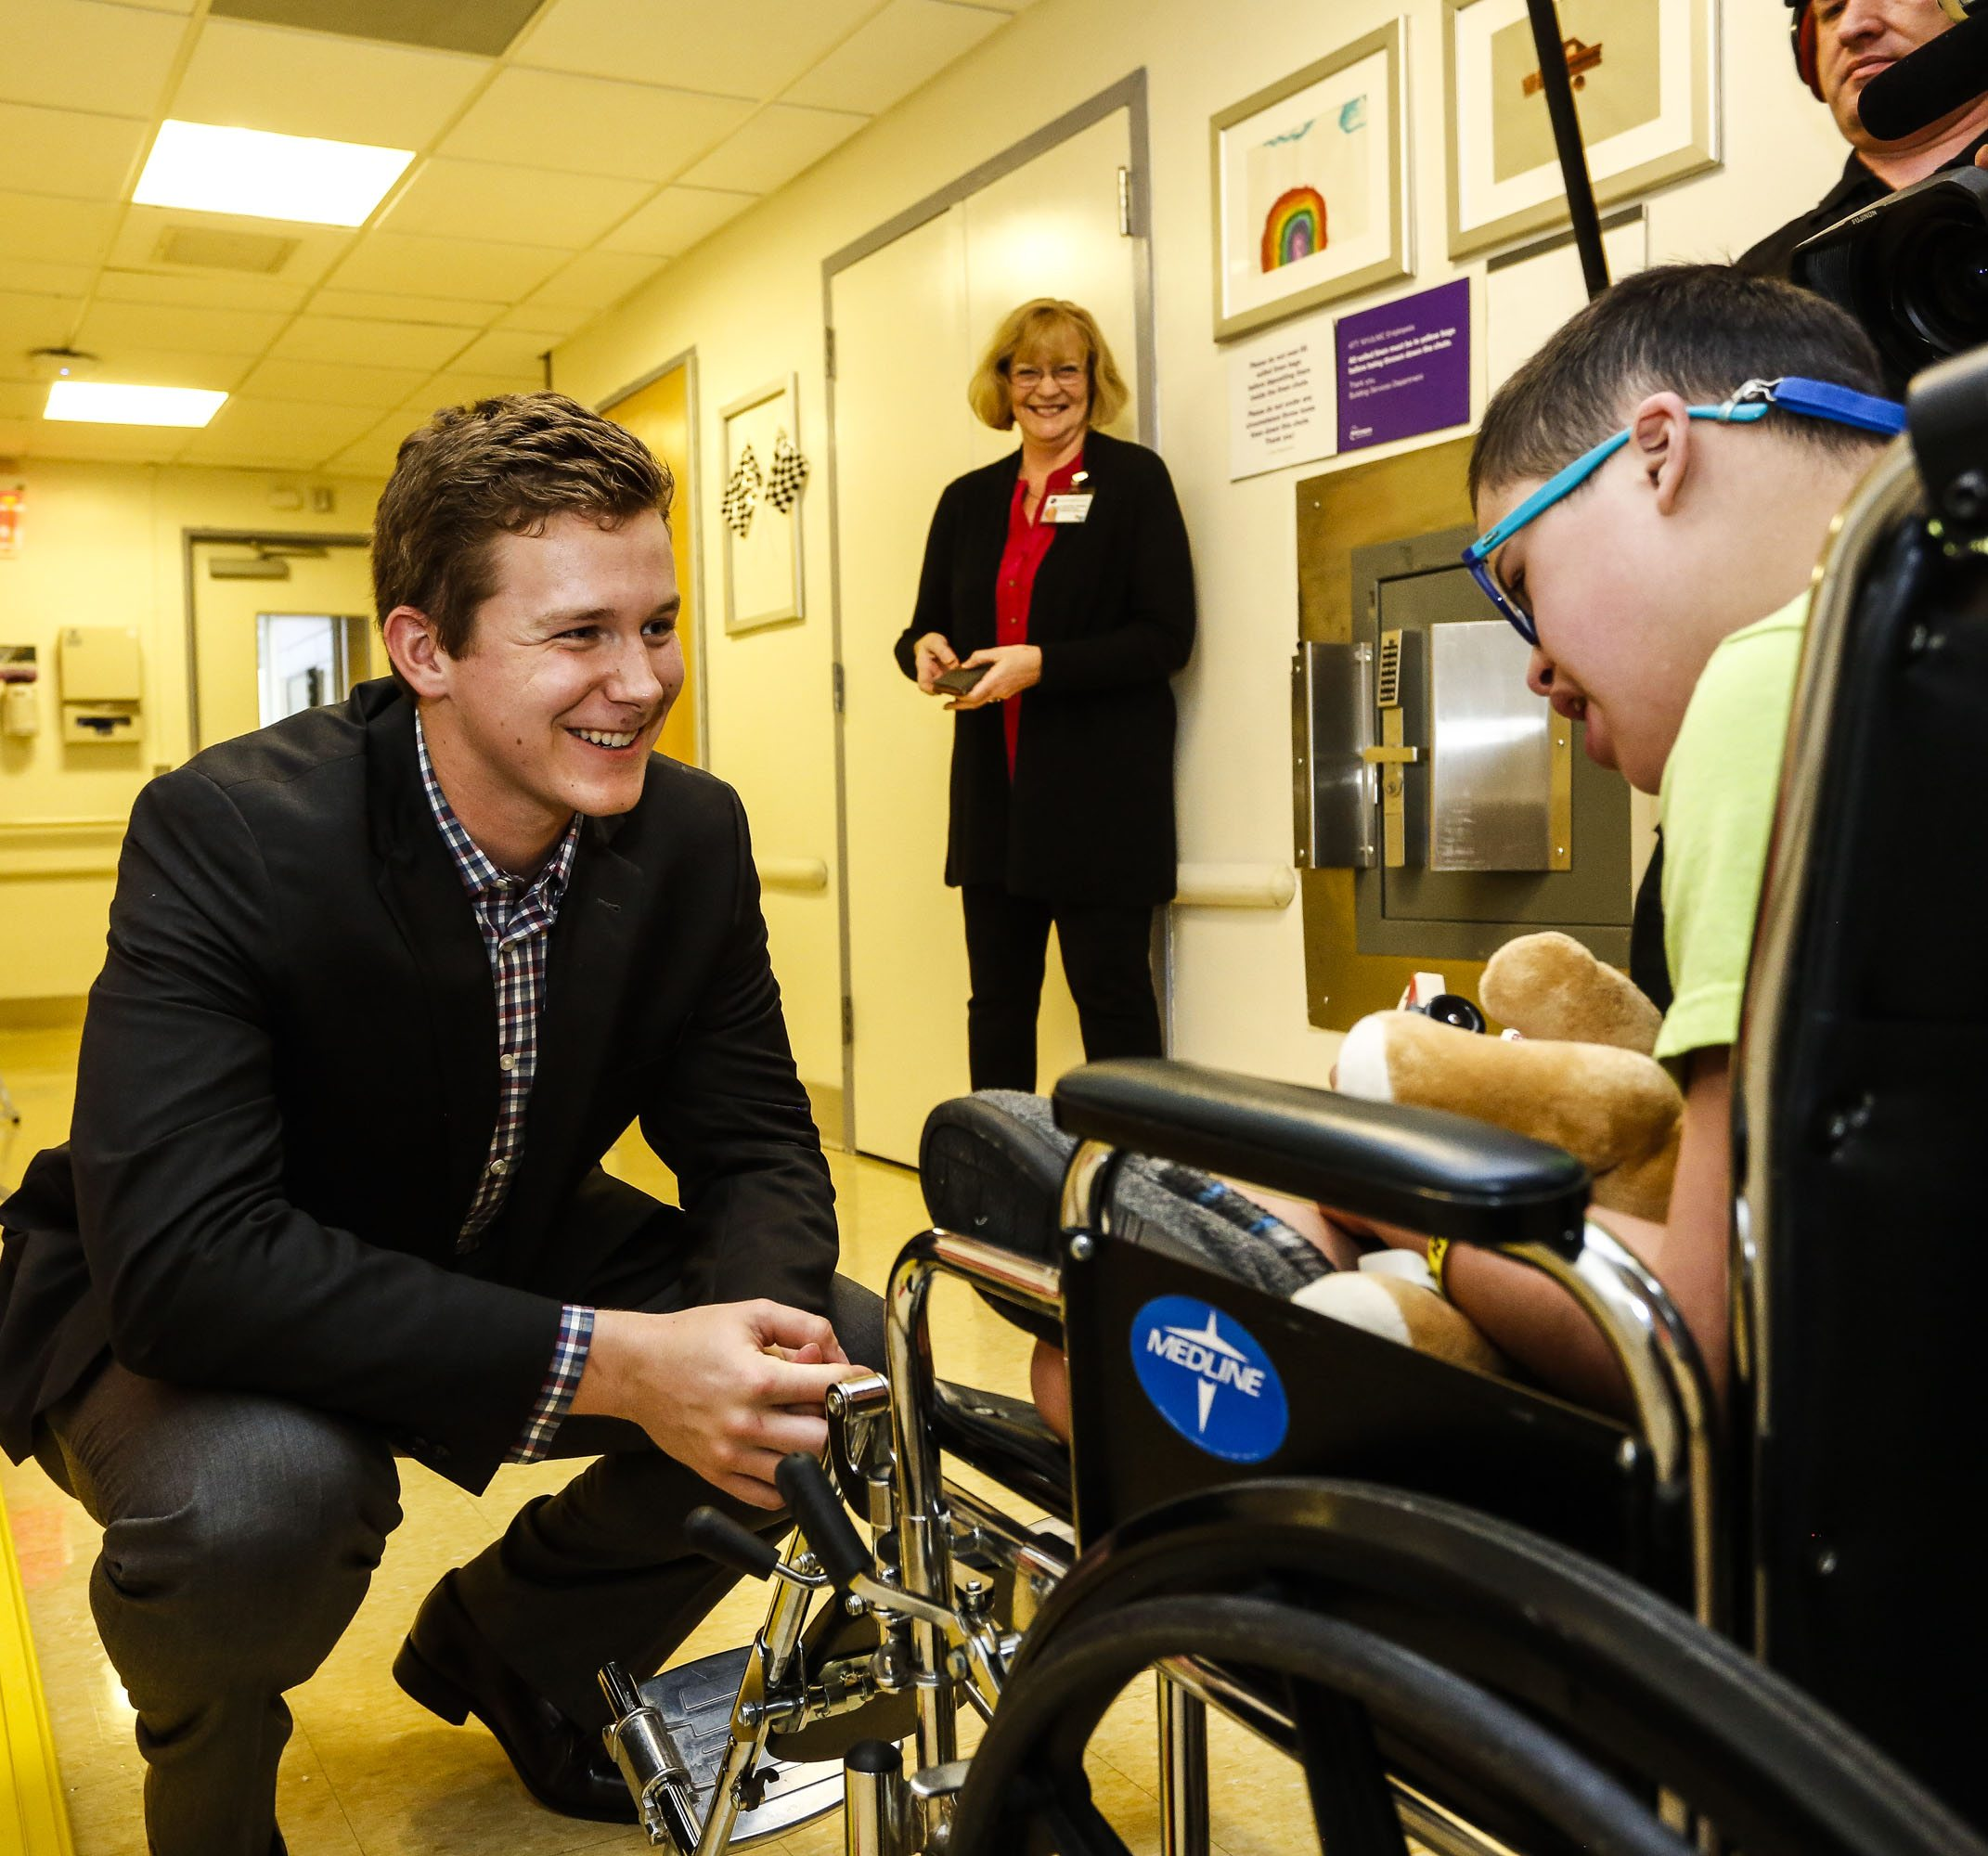 NEW YORK - APRIL 26:  Bill and Amy France visit the NYU Langone Medical Center in New York City, April 26, 2017.  (Photo by Jeff Zelevansky/NASCAR via Getty Images)